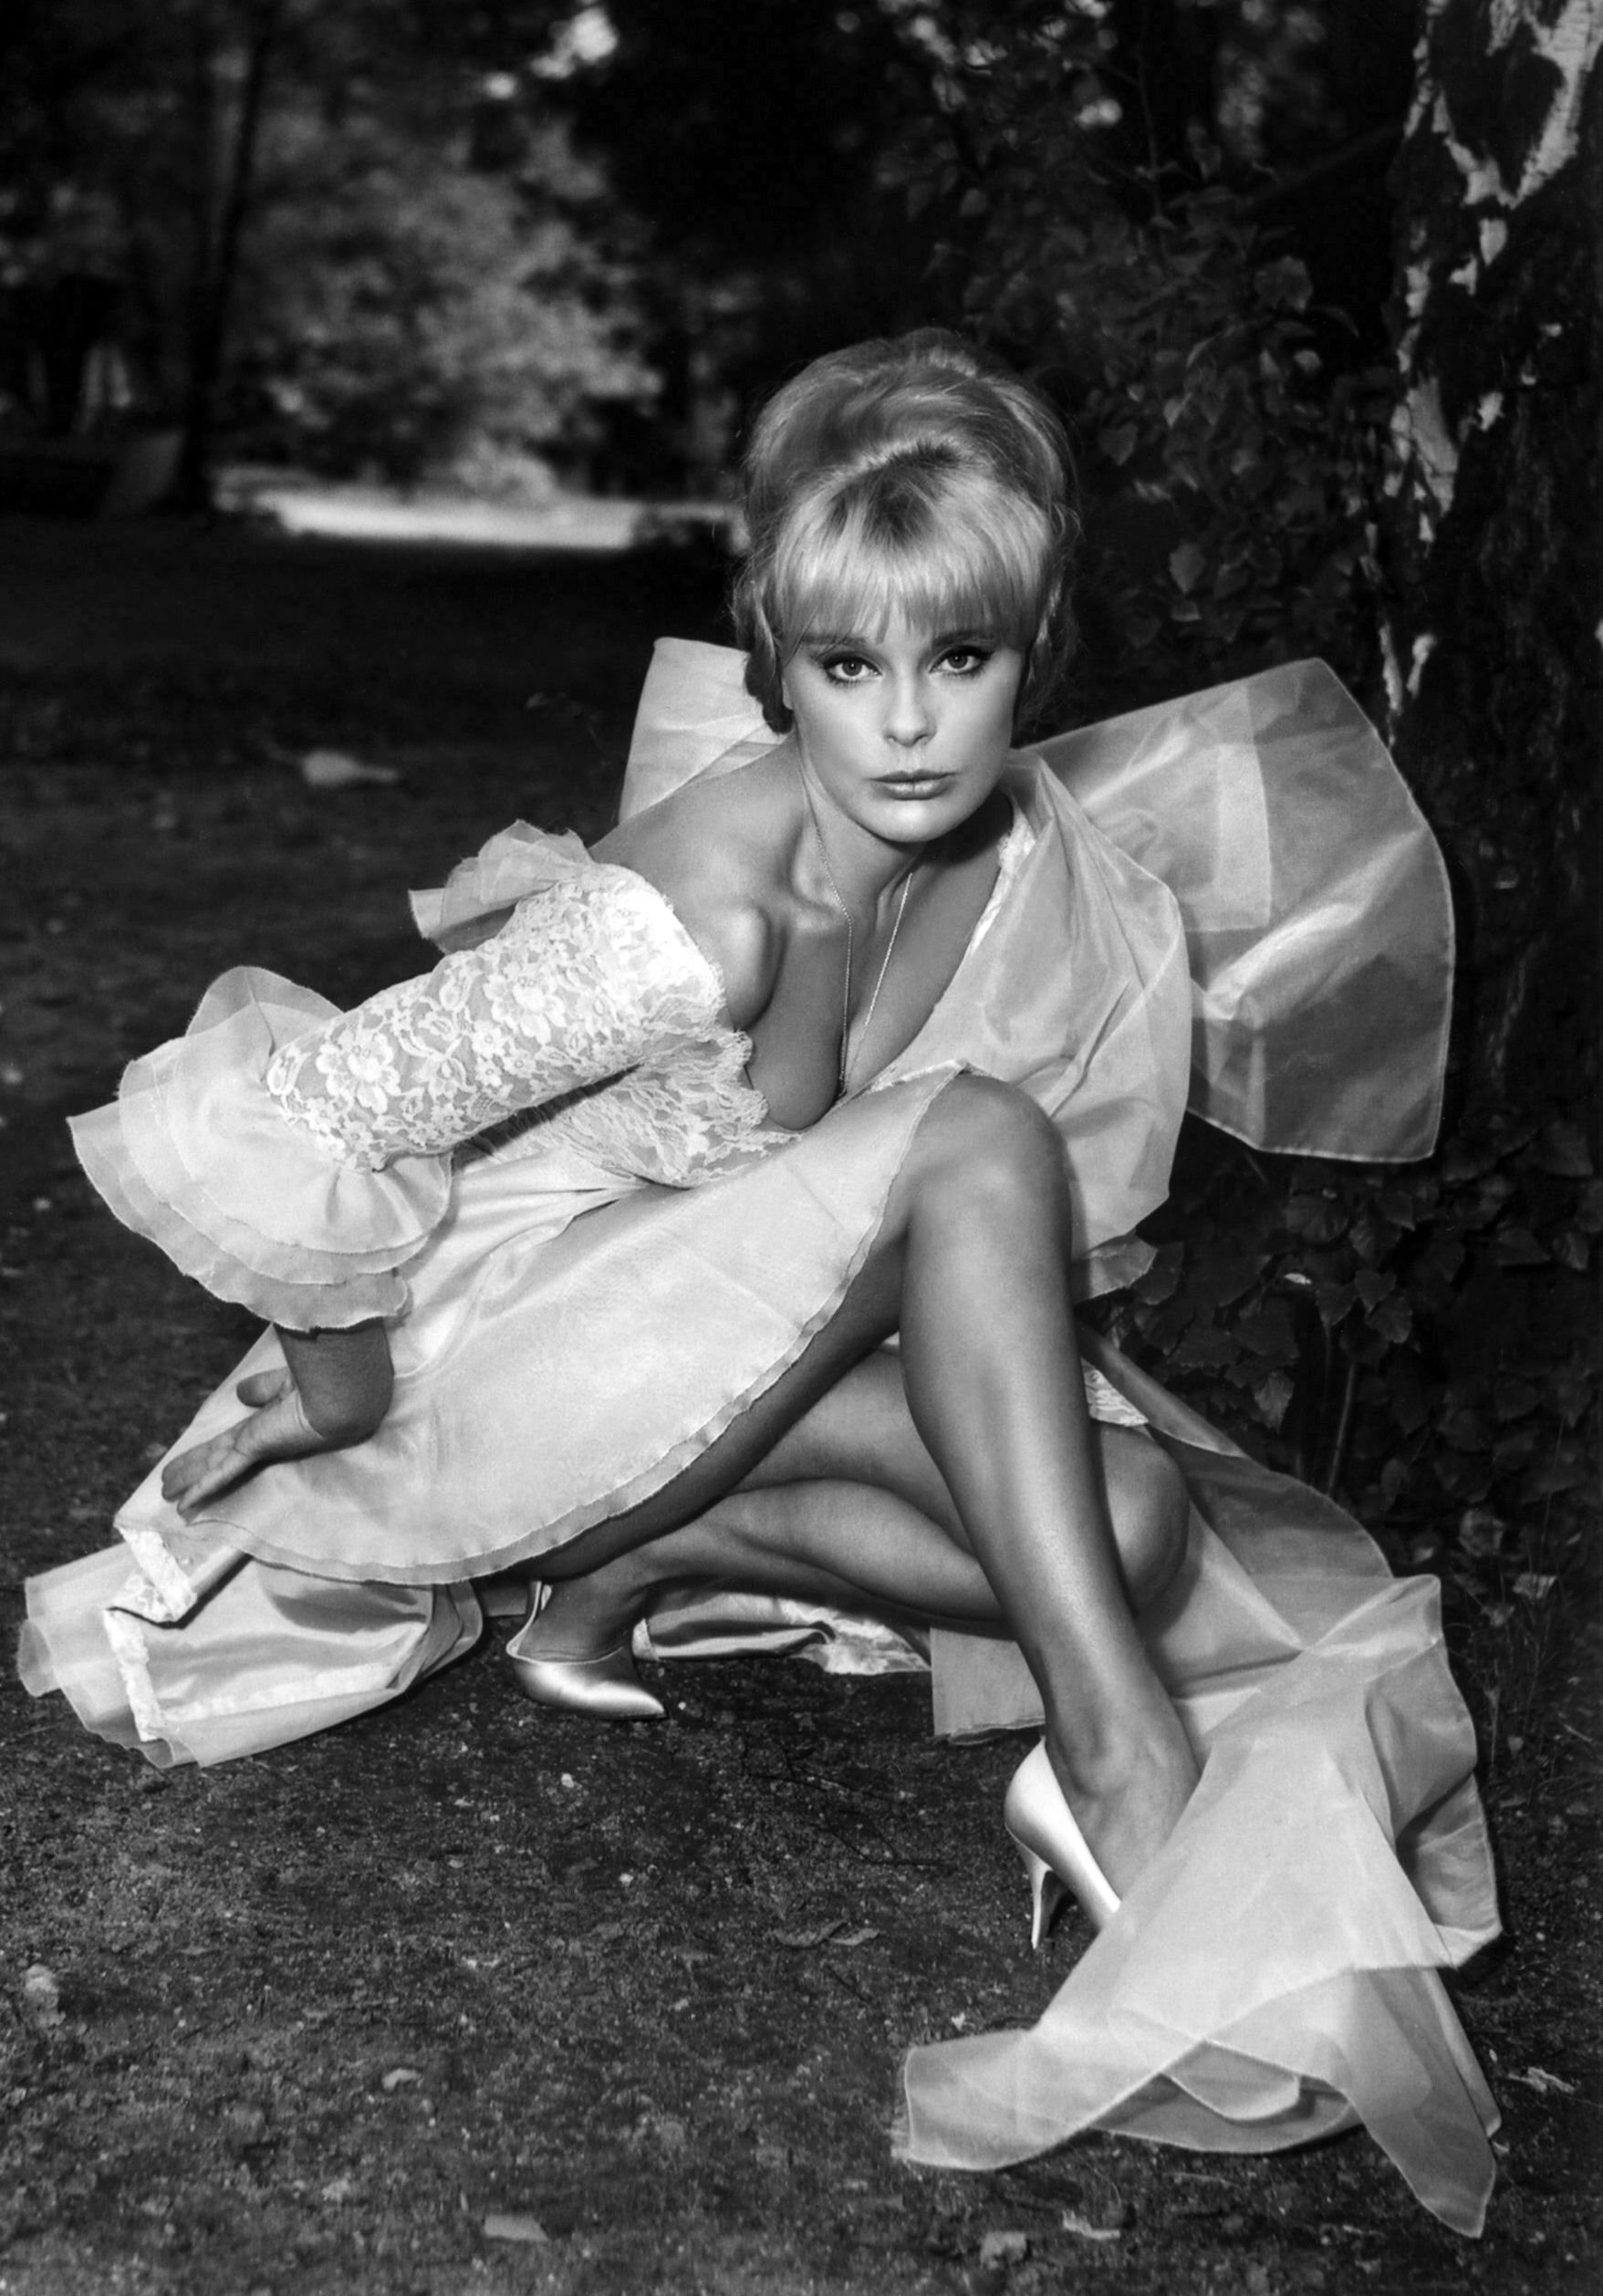 ... movies 1960s fashion posed actresses forward elke sommer made in italy